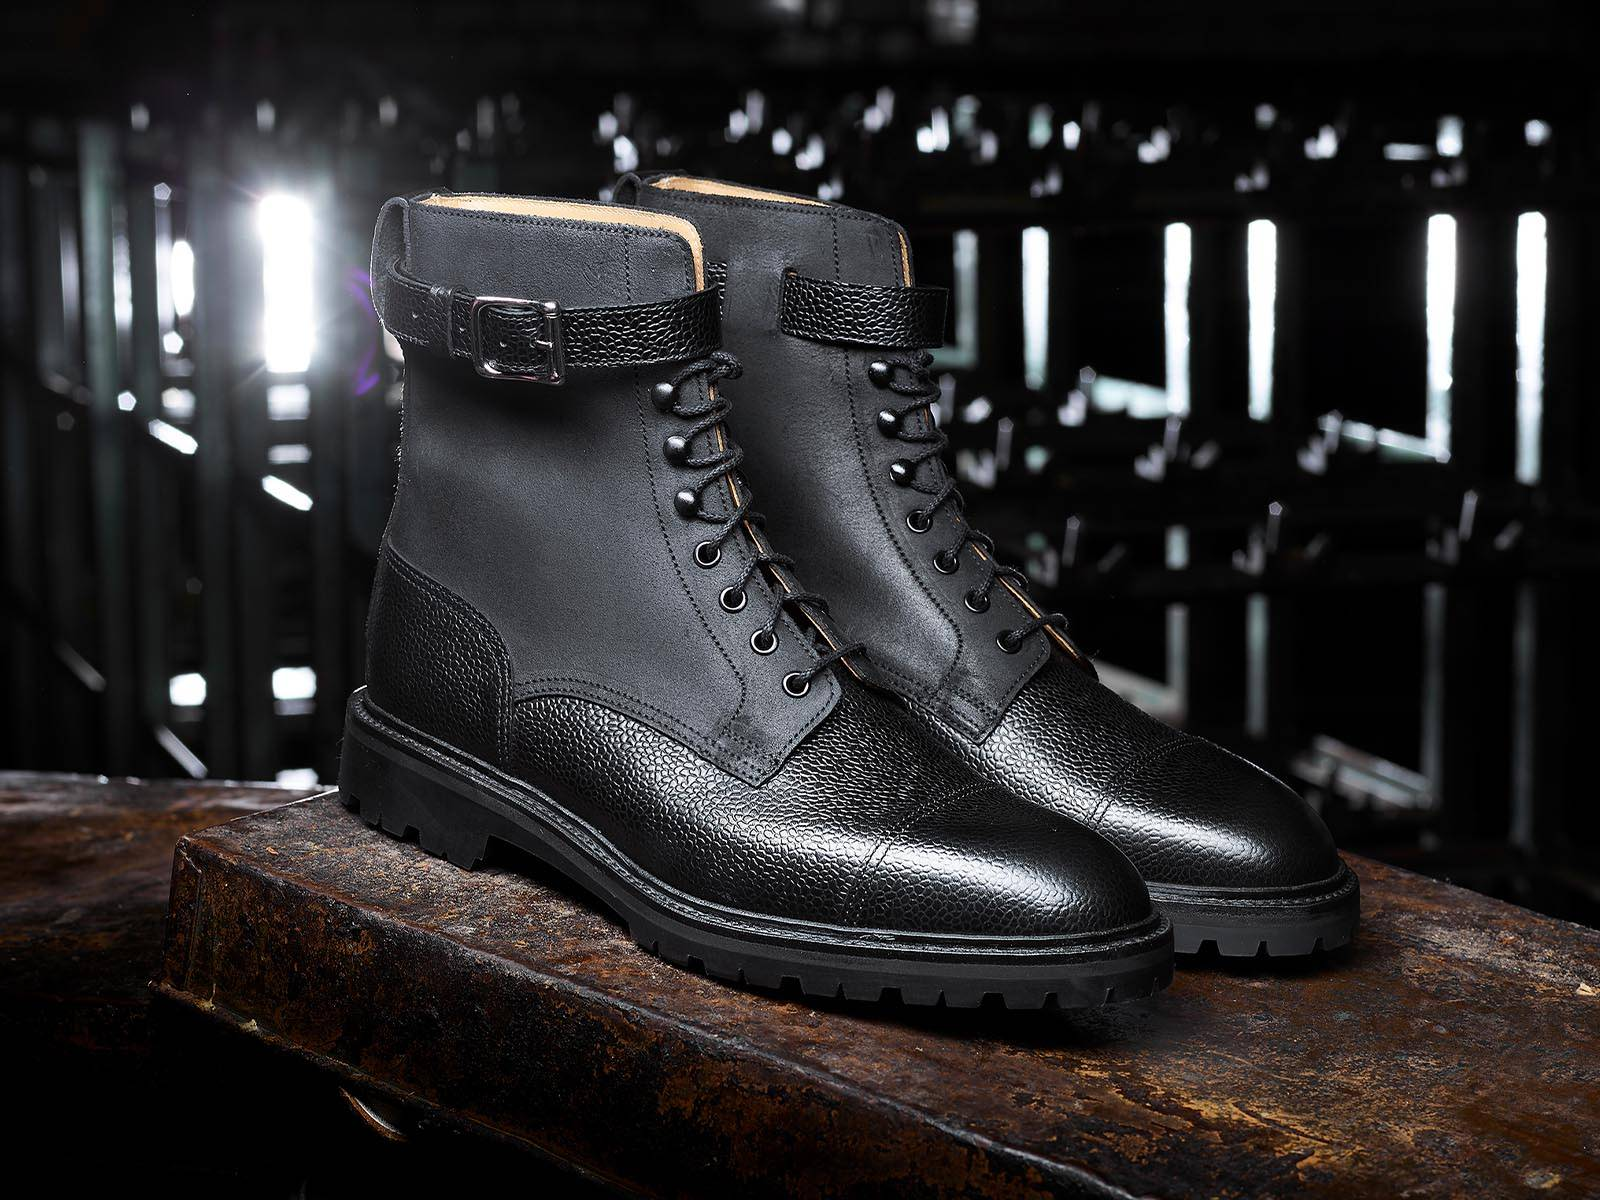 The Black Editions